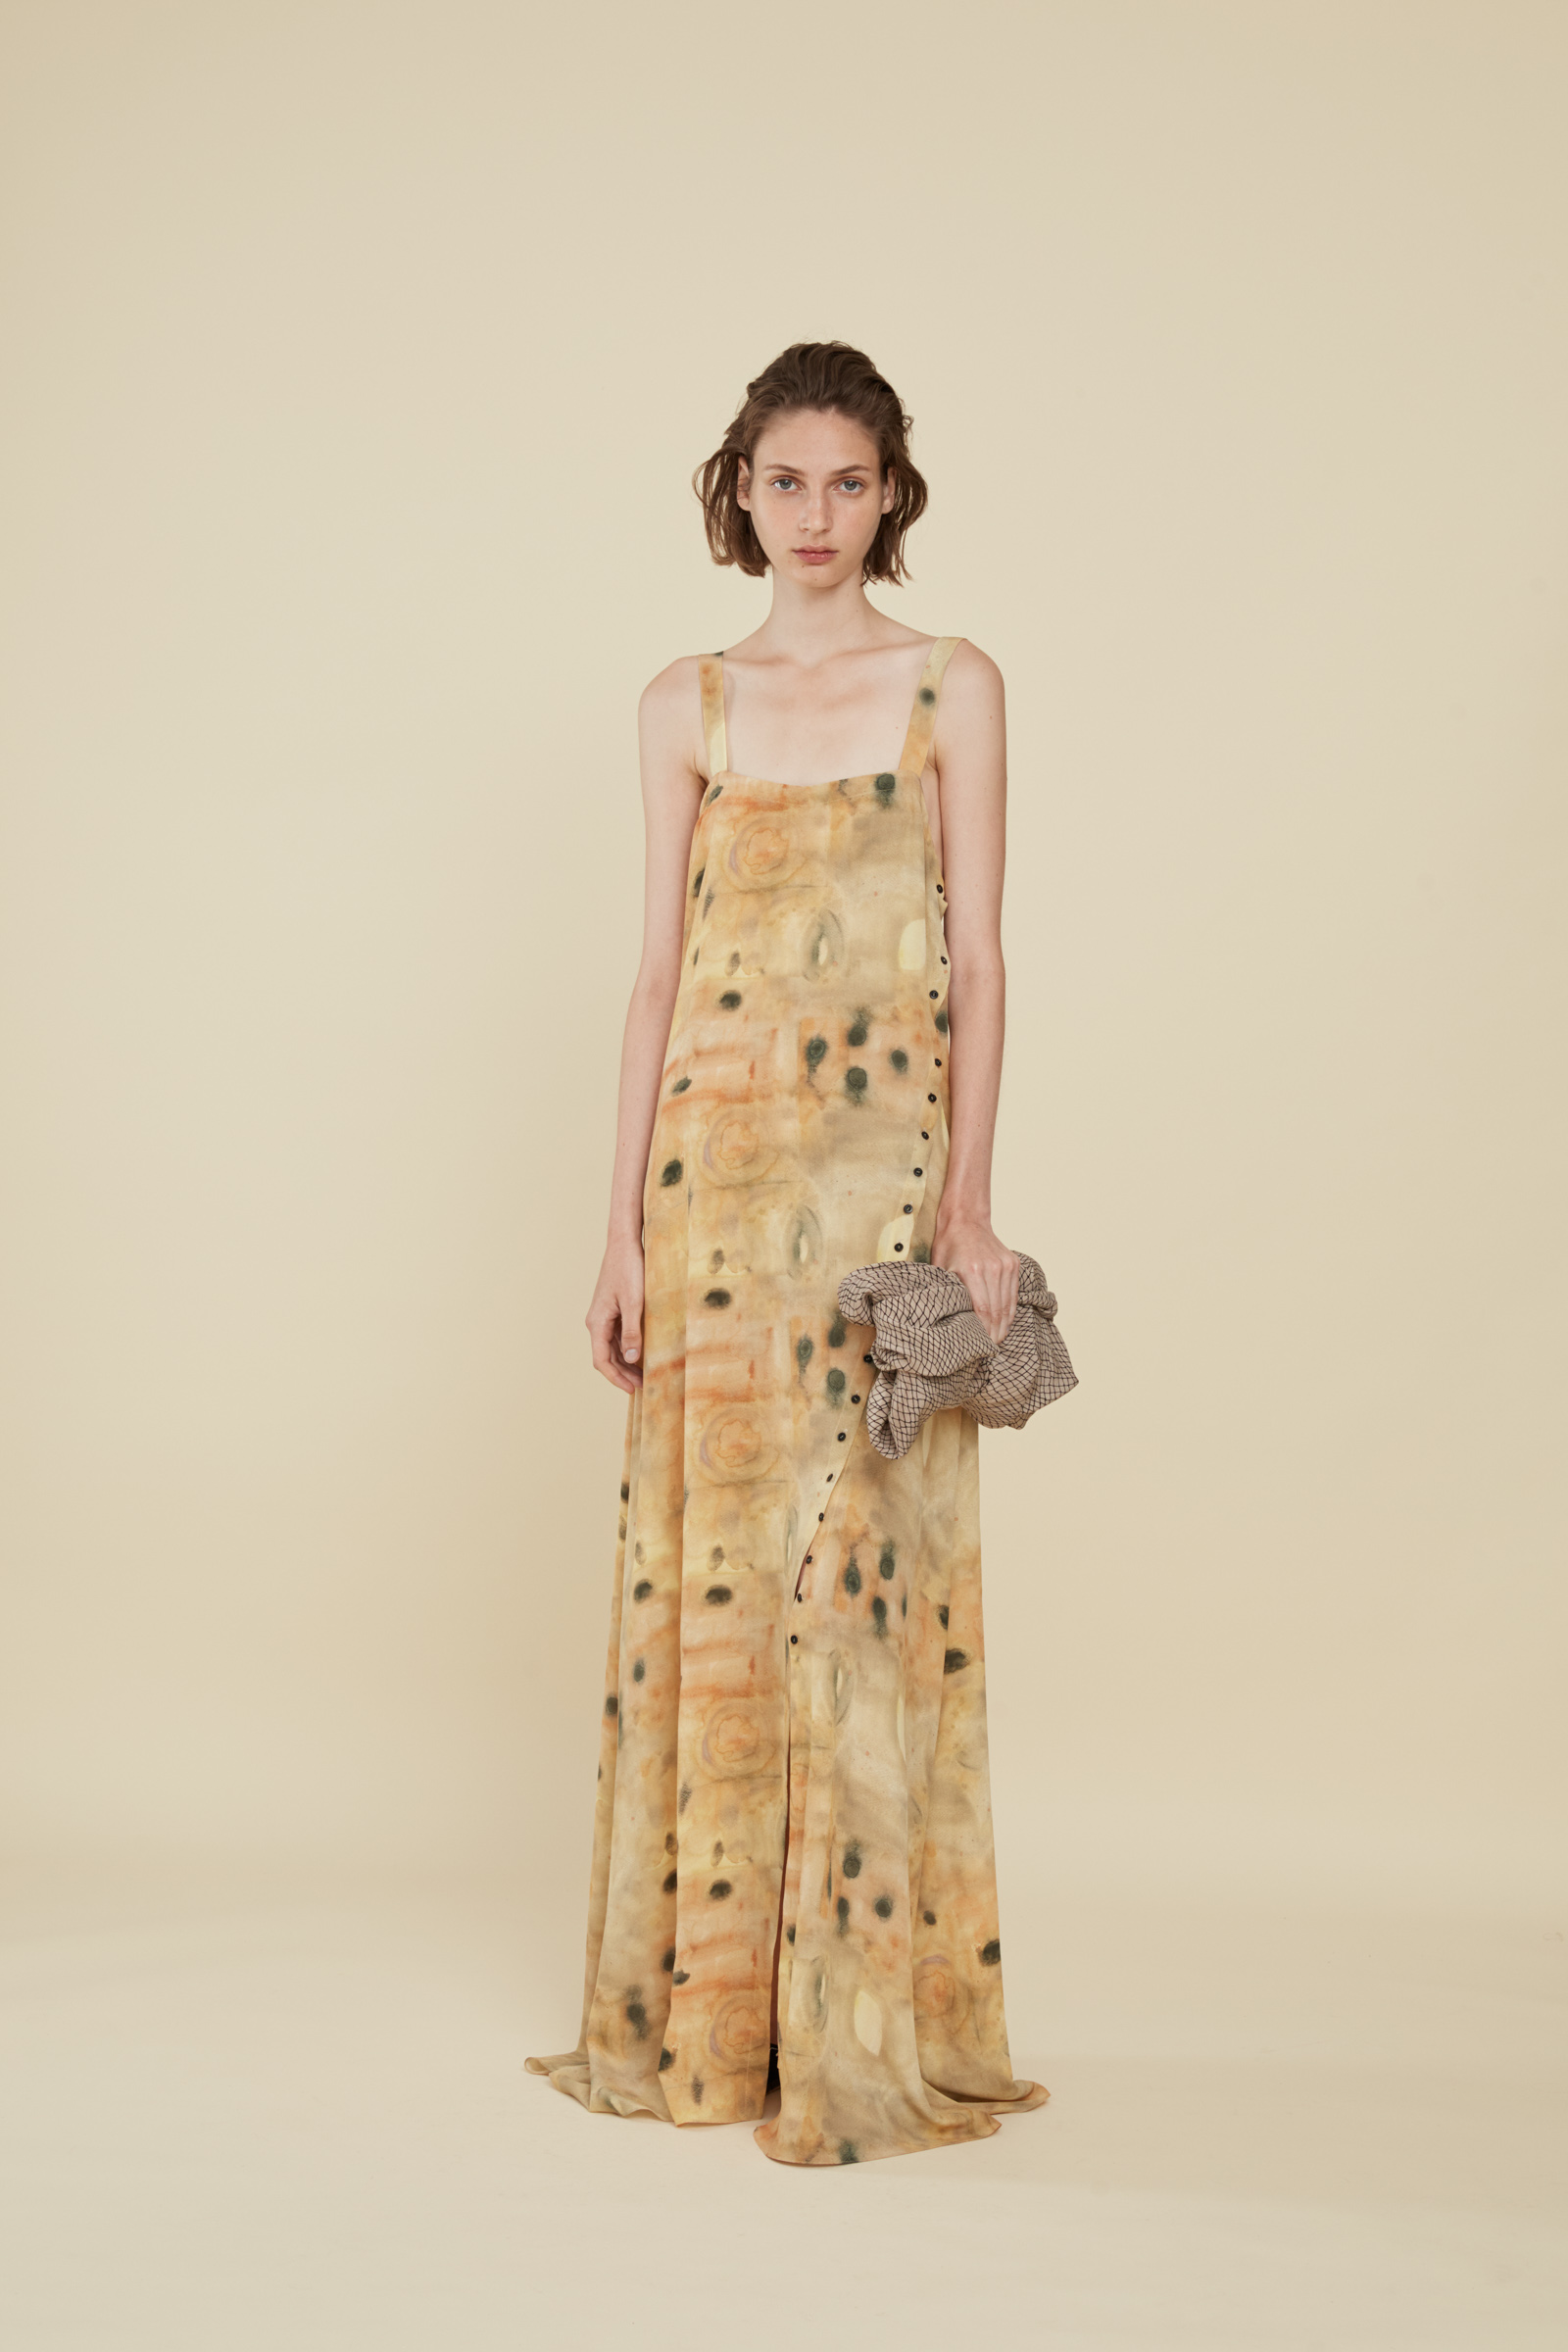 PAPAYA, PRINTED SILK DRESS, DRESSES collection – Cortana Moda